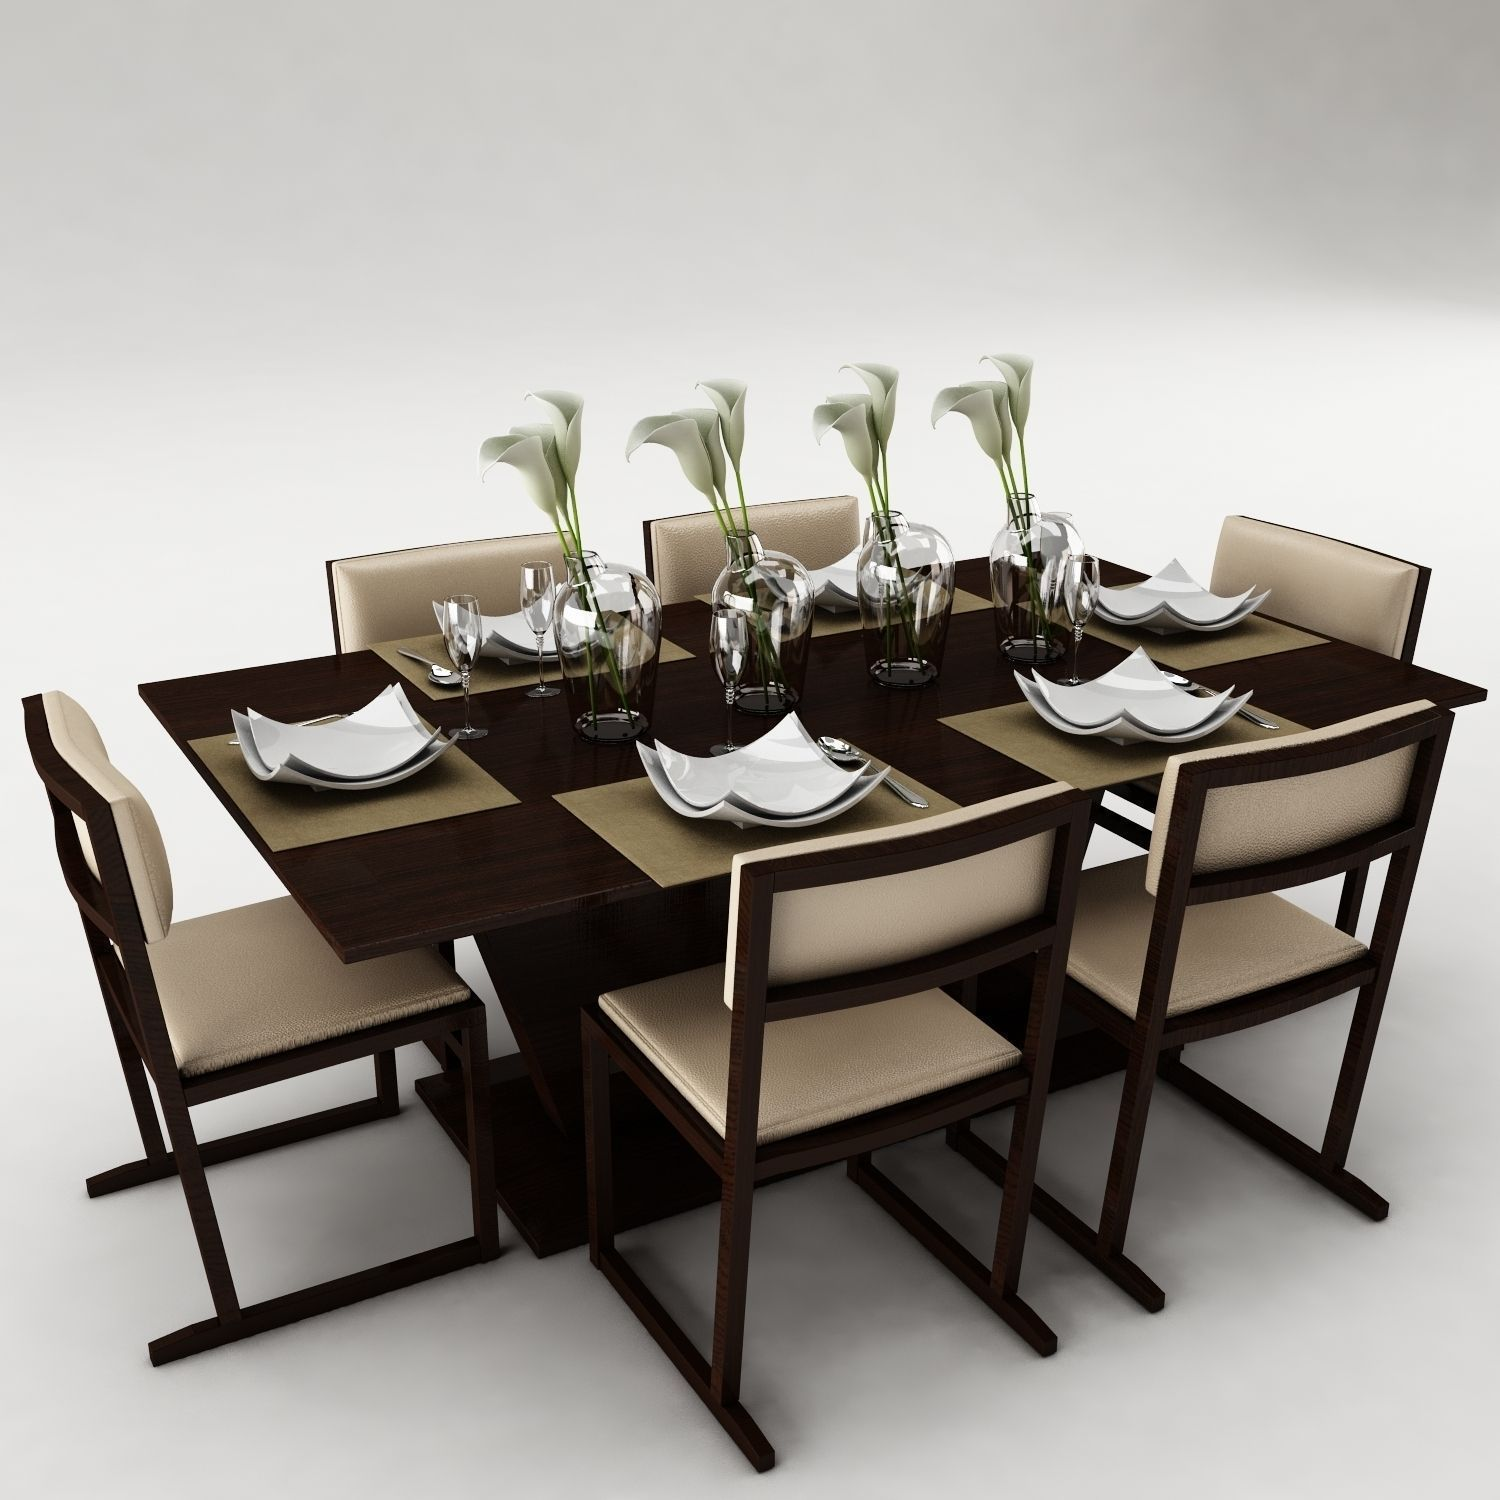 New Dining Table Set Price In Chennai Light of Dining Room : dining table set 20 3d model max obj 3ds fbx from lightofdiningroom.com size 1500 x 1500 jpeg 175kB